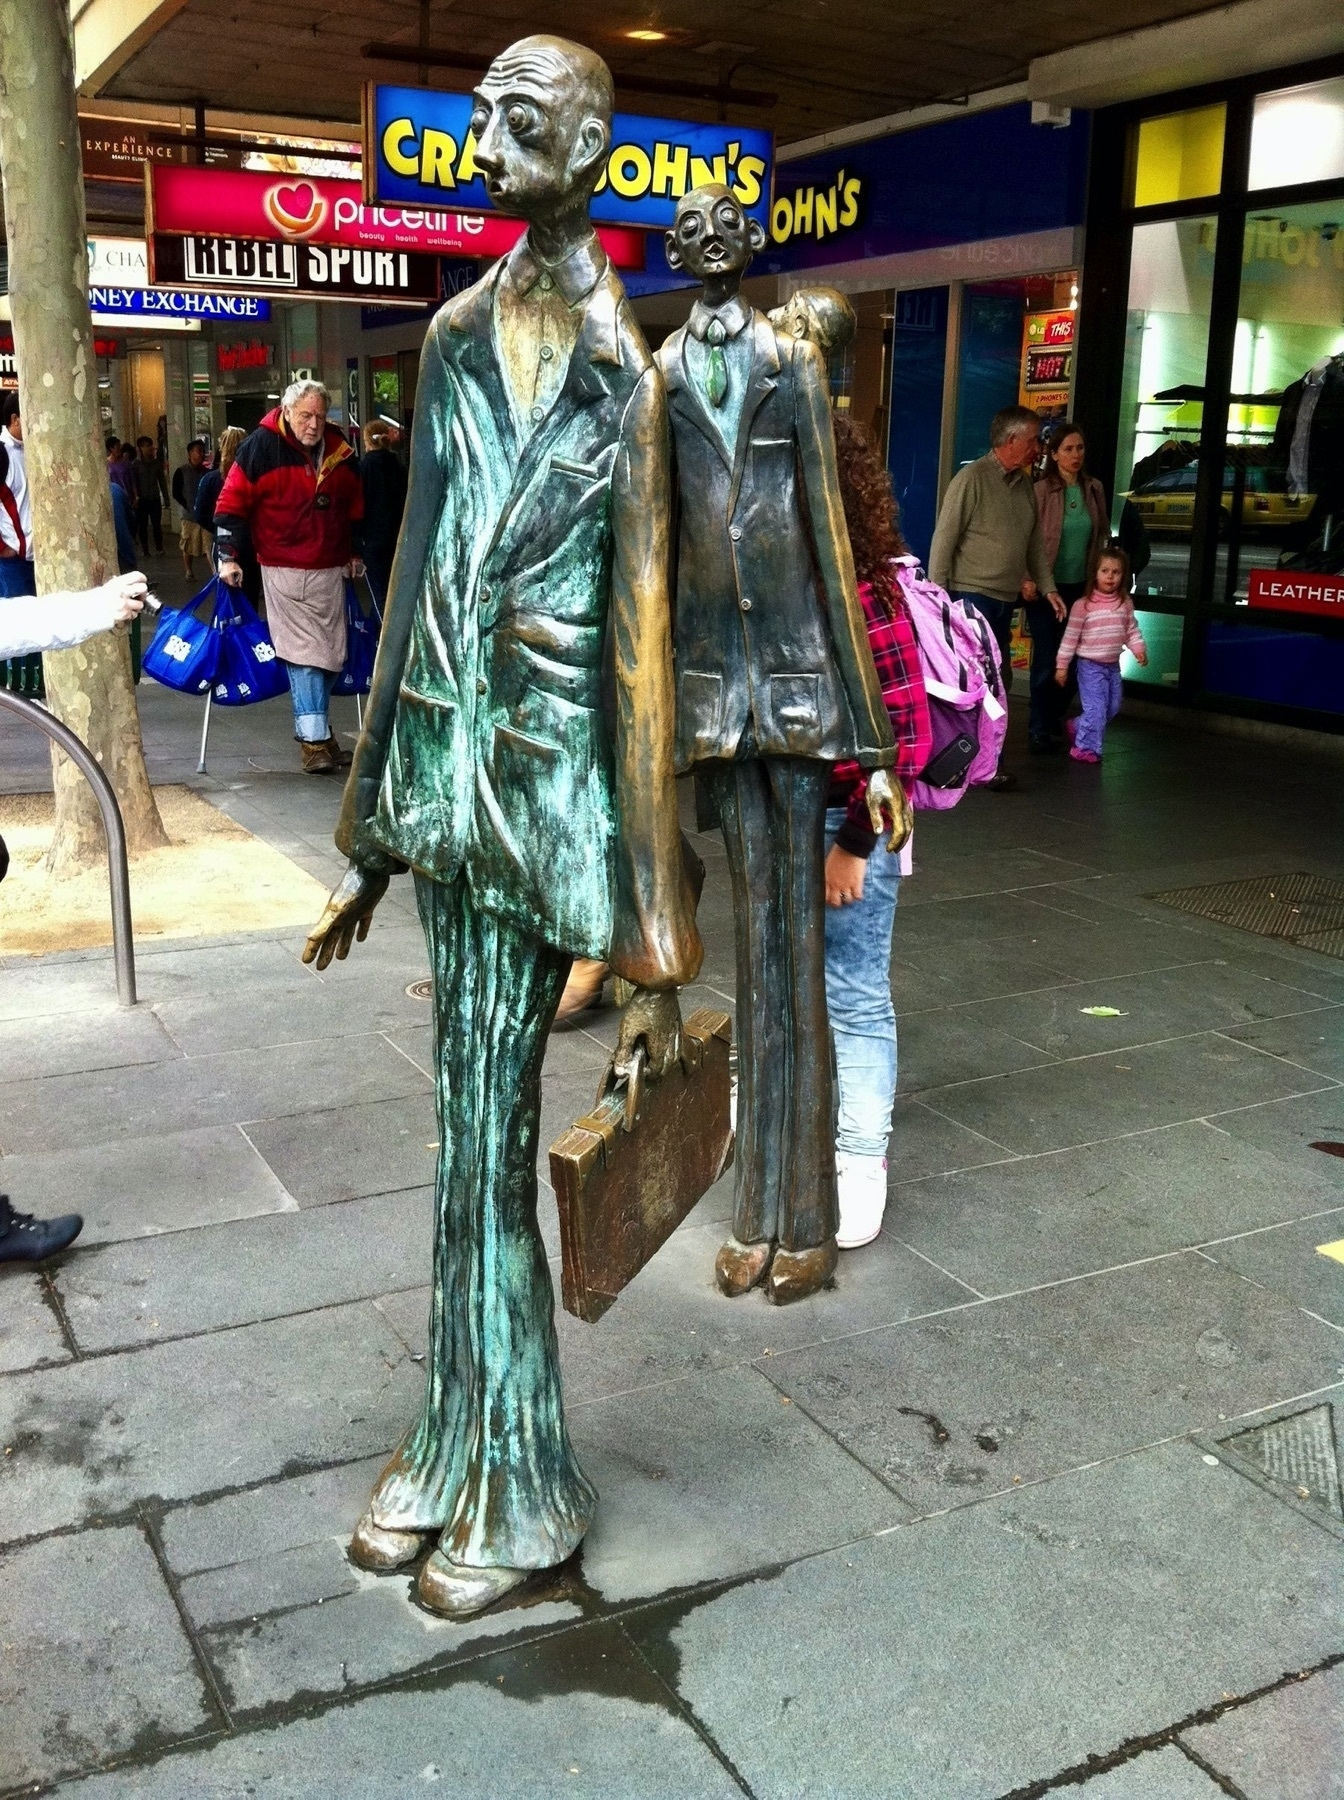 Life size statues of 3 skinny men. Another angle.